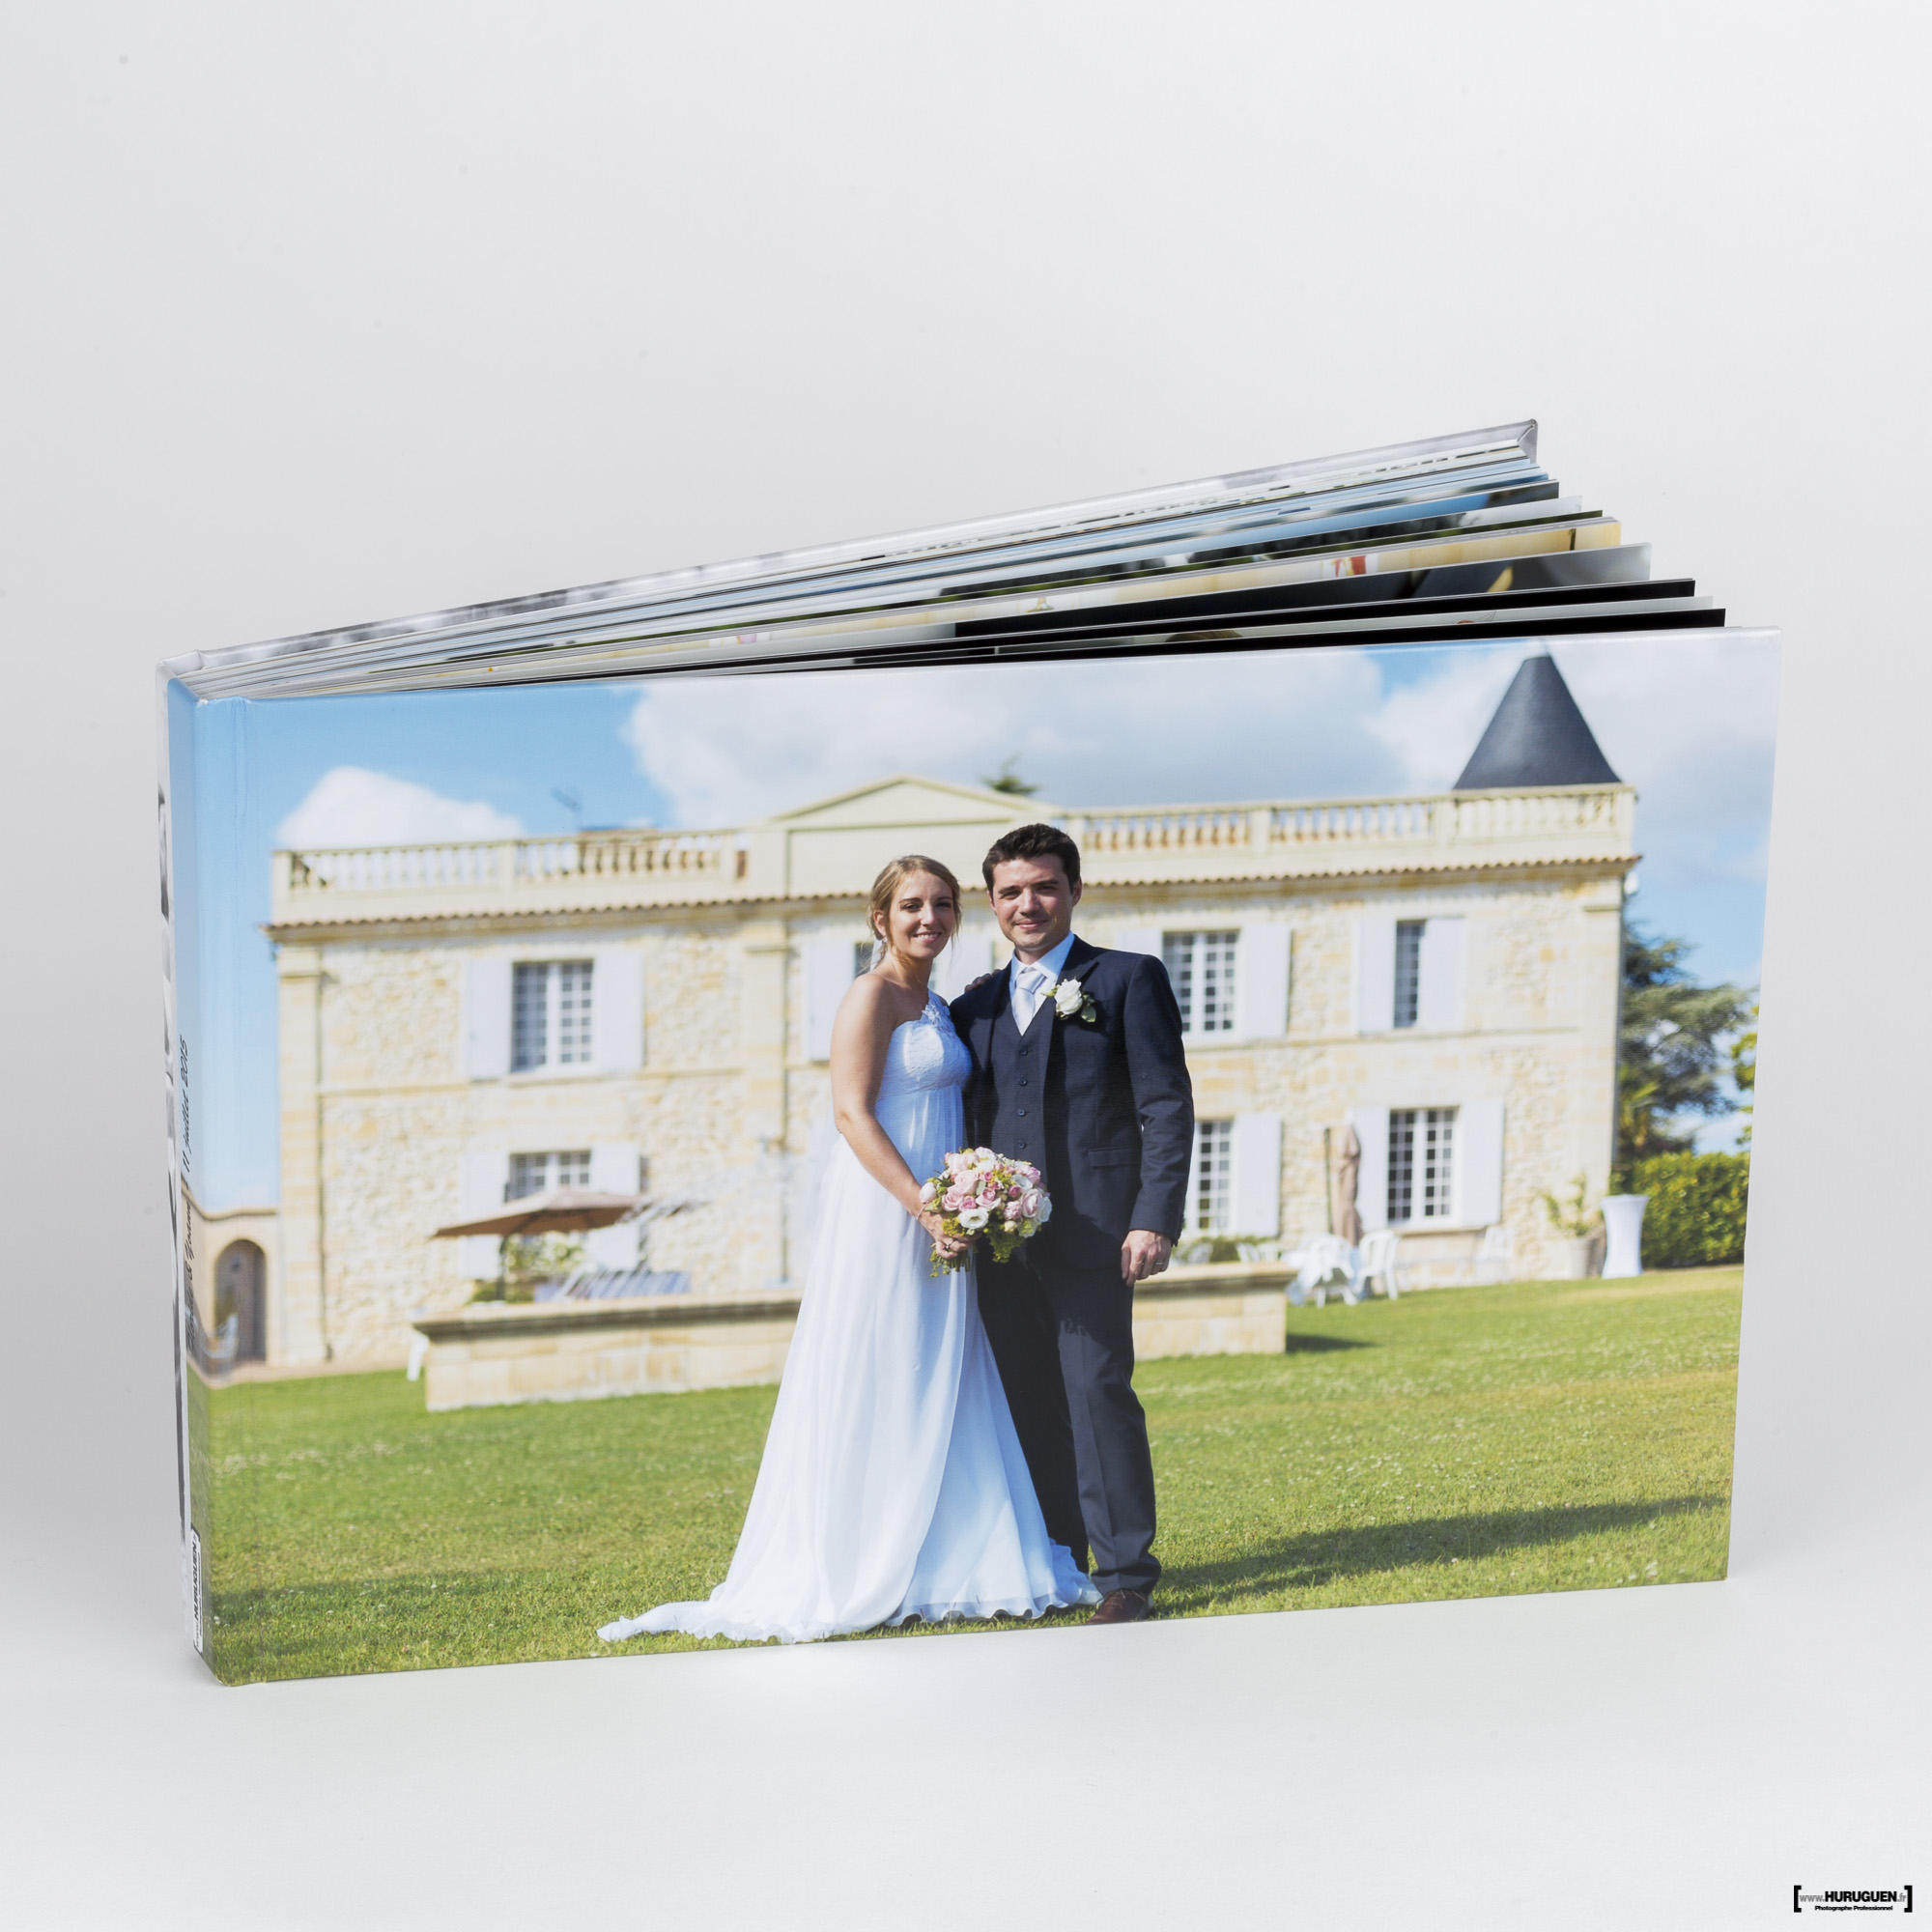 tarifs album photo mariage bordeaux sebastien huruguensebastien huruguen photographe de. Black Bedroom Furniture Sets. Home Design Ideas